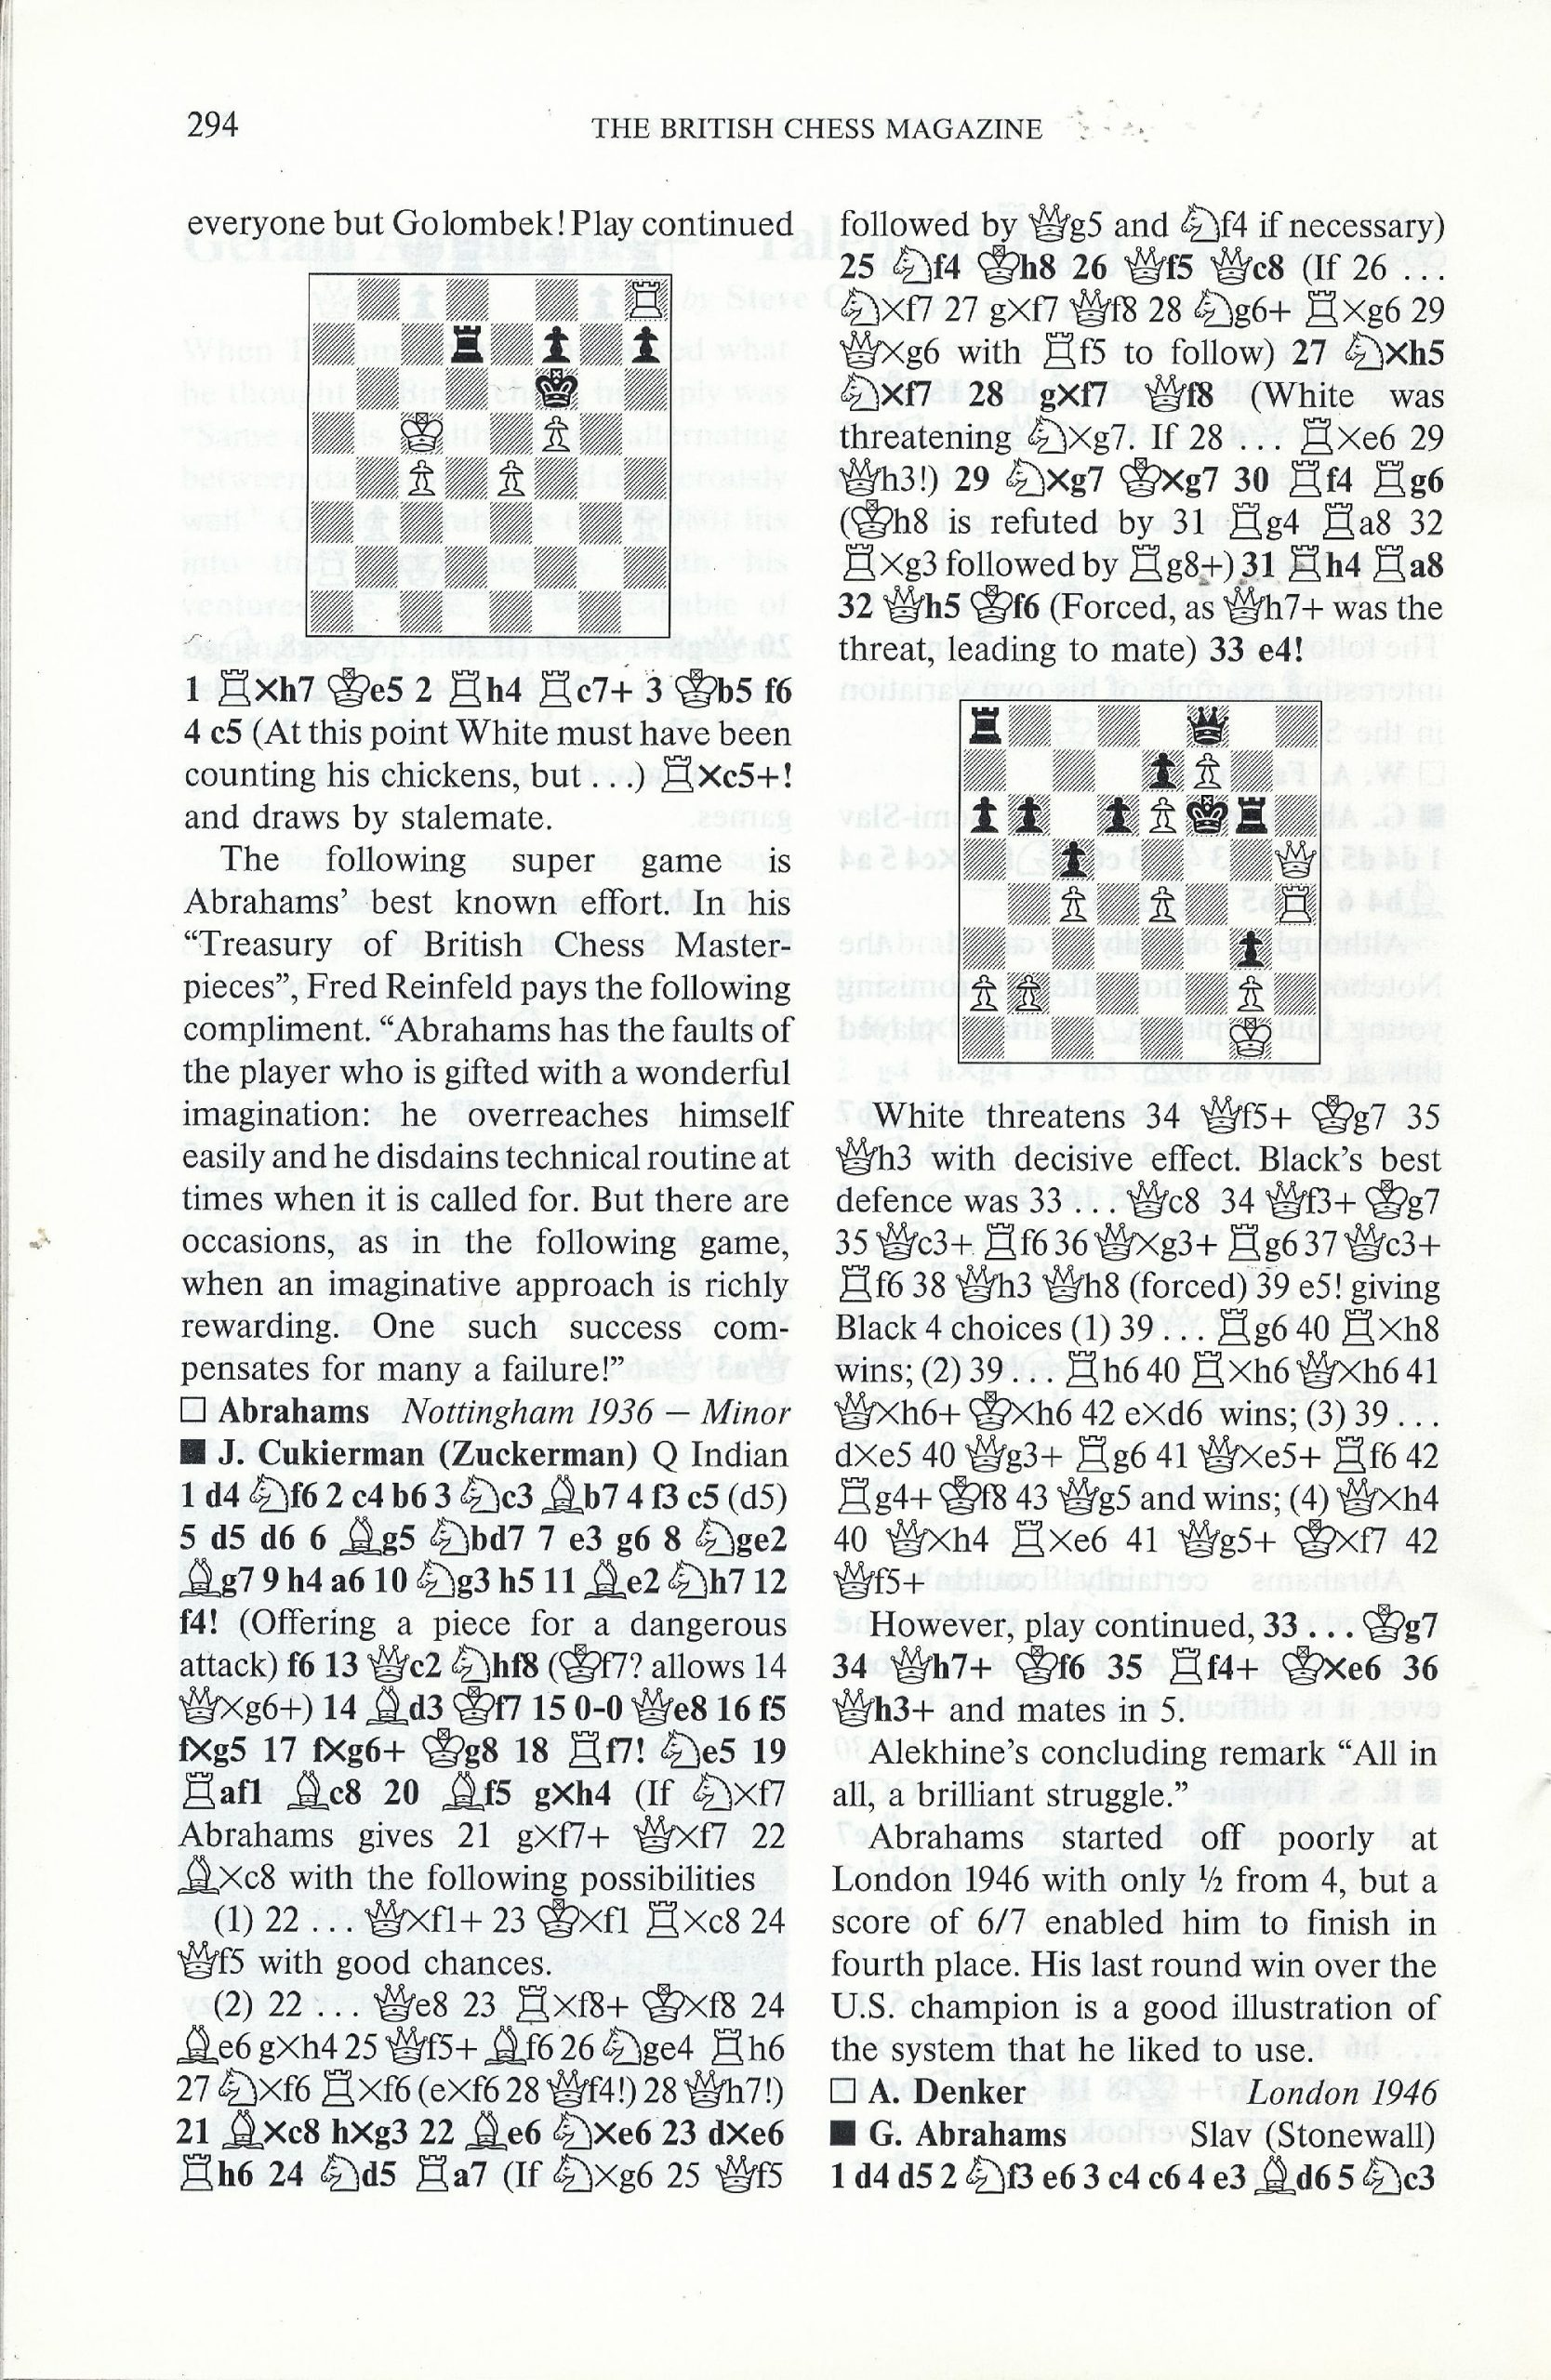 British Chess Magazine, Volume CVIII (1988), Number 7 (July), pp. 294